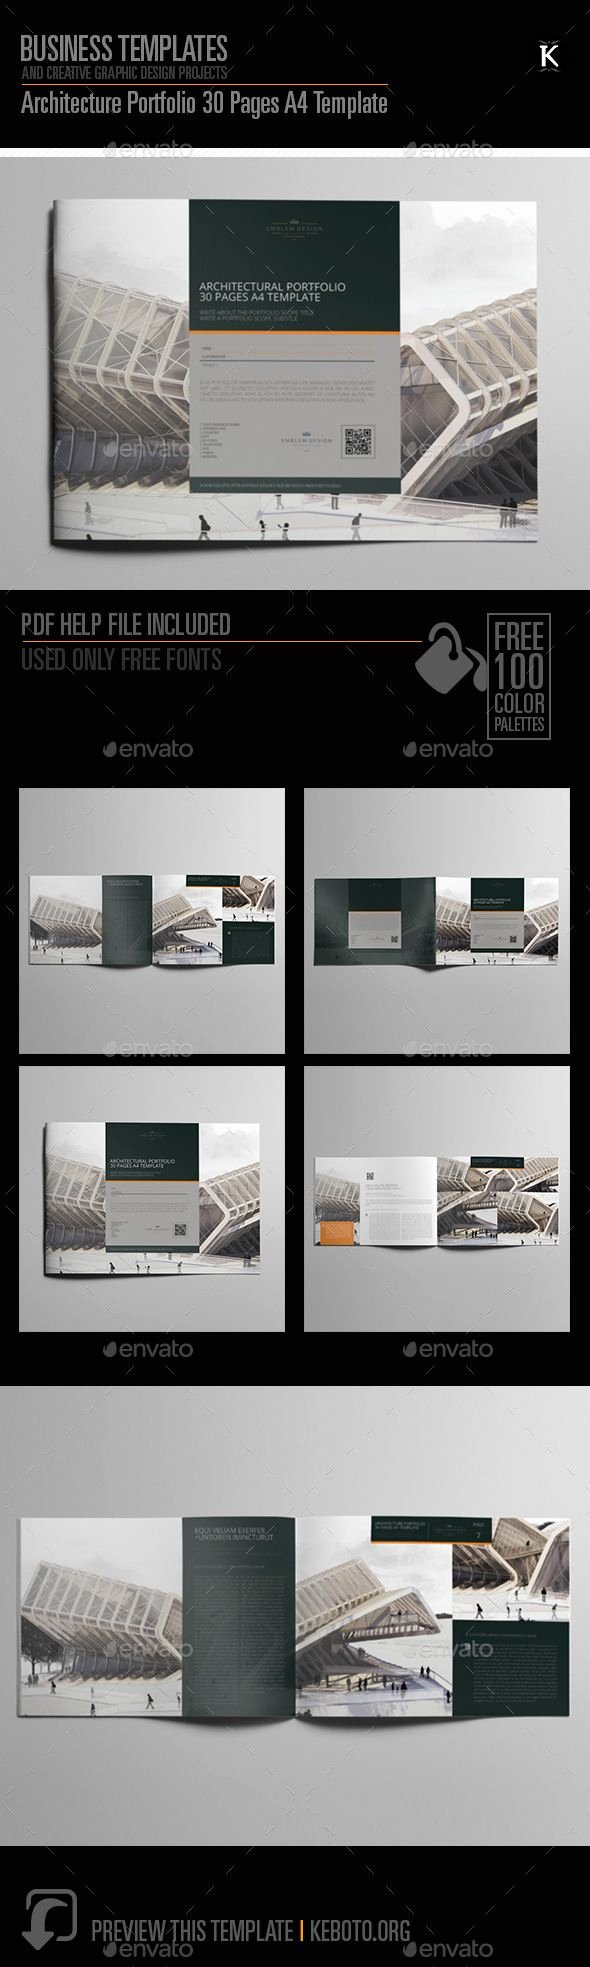 Architecture Portfolio Template Indesign Elegant Architecture Portfolio Brochure Template Indesign Indd 30